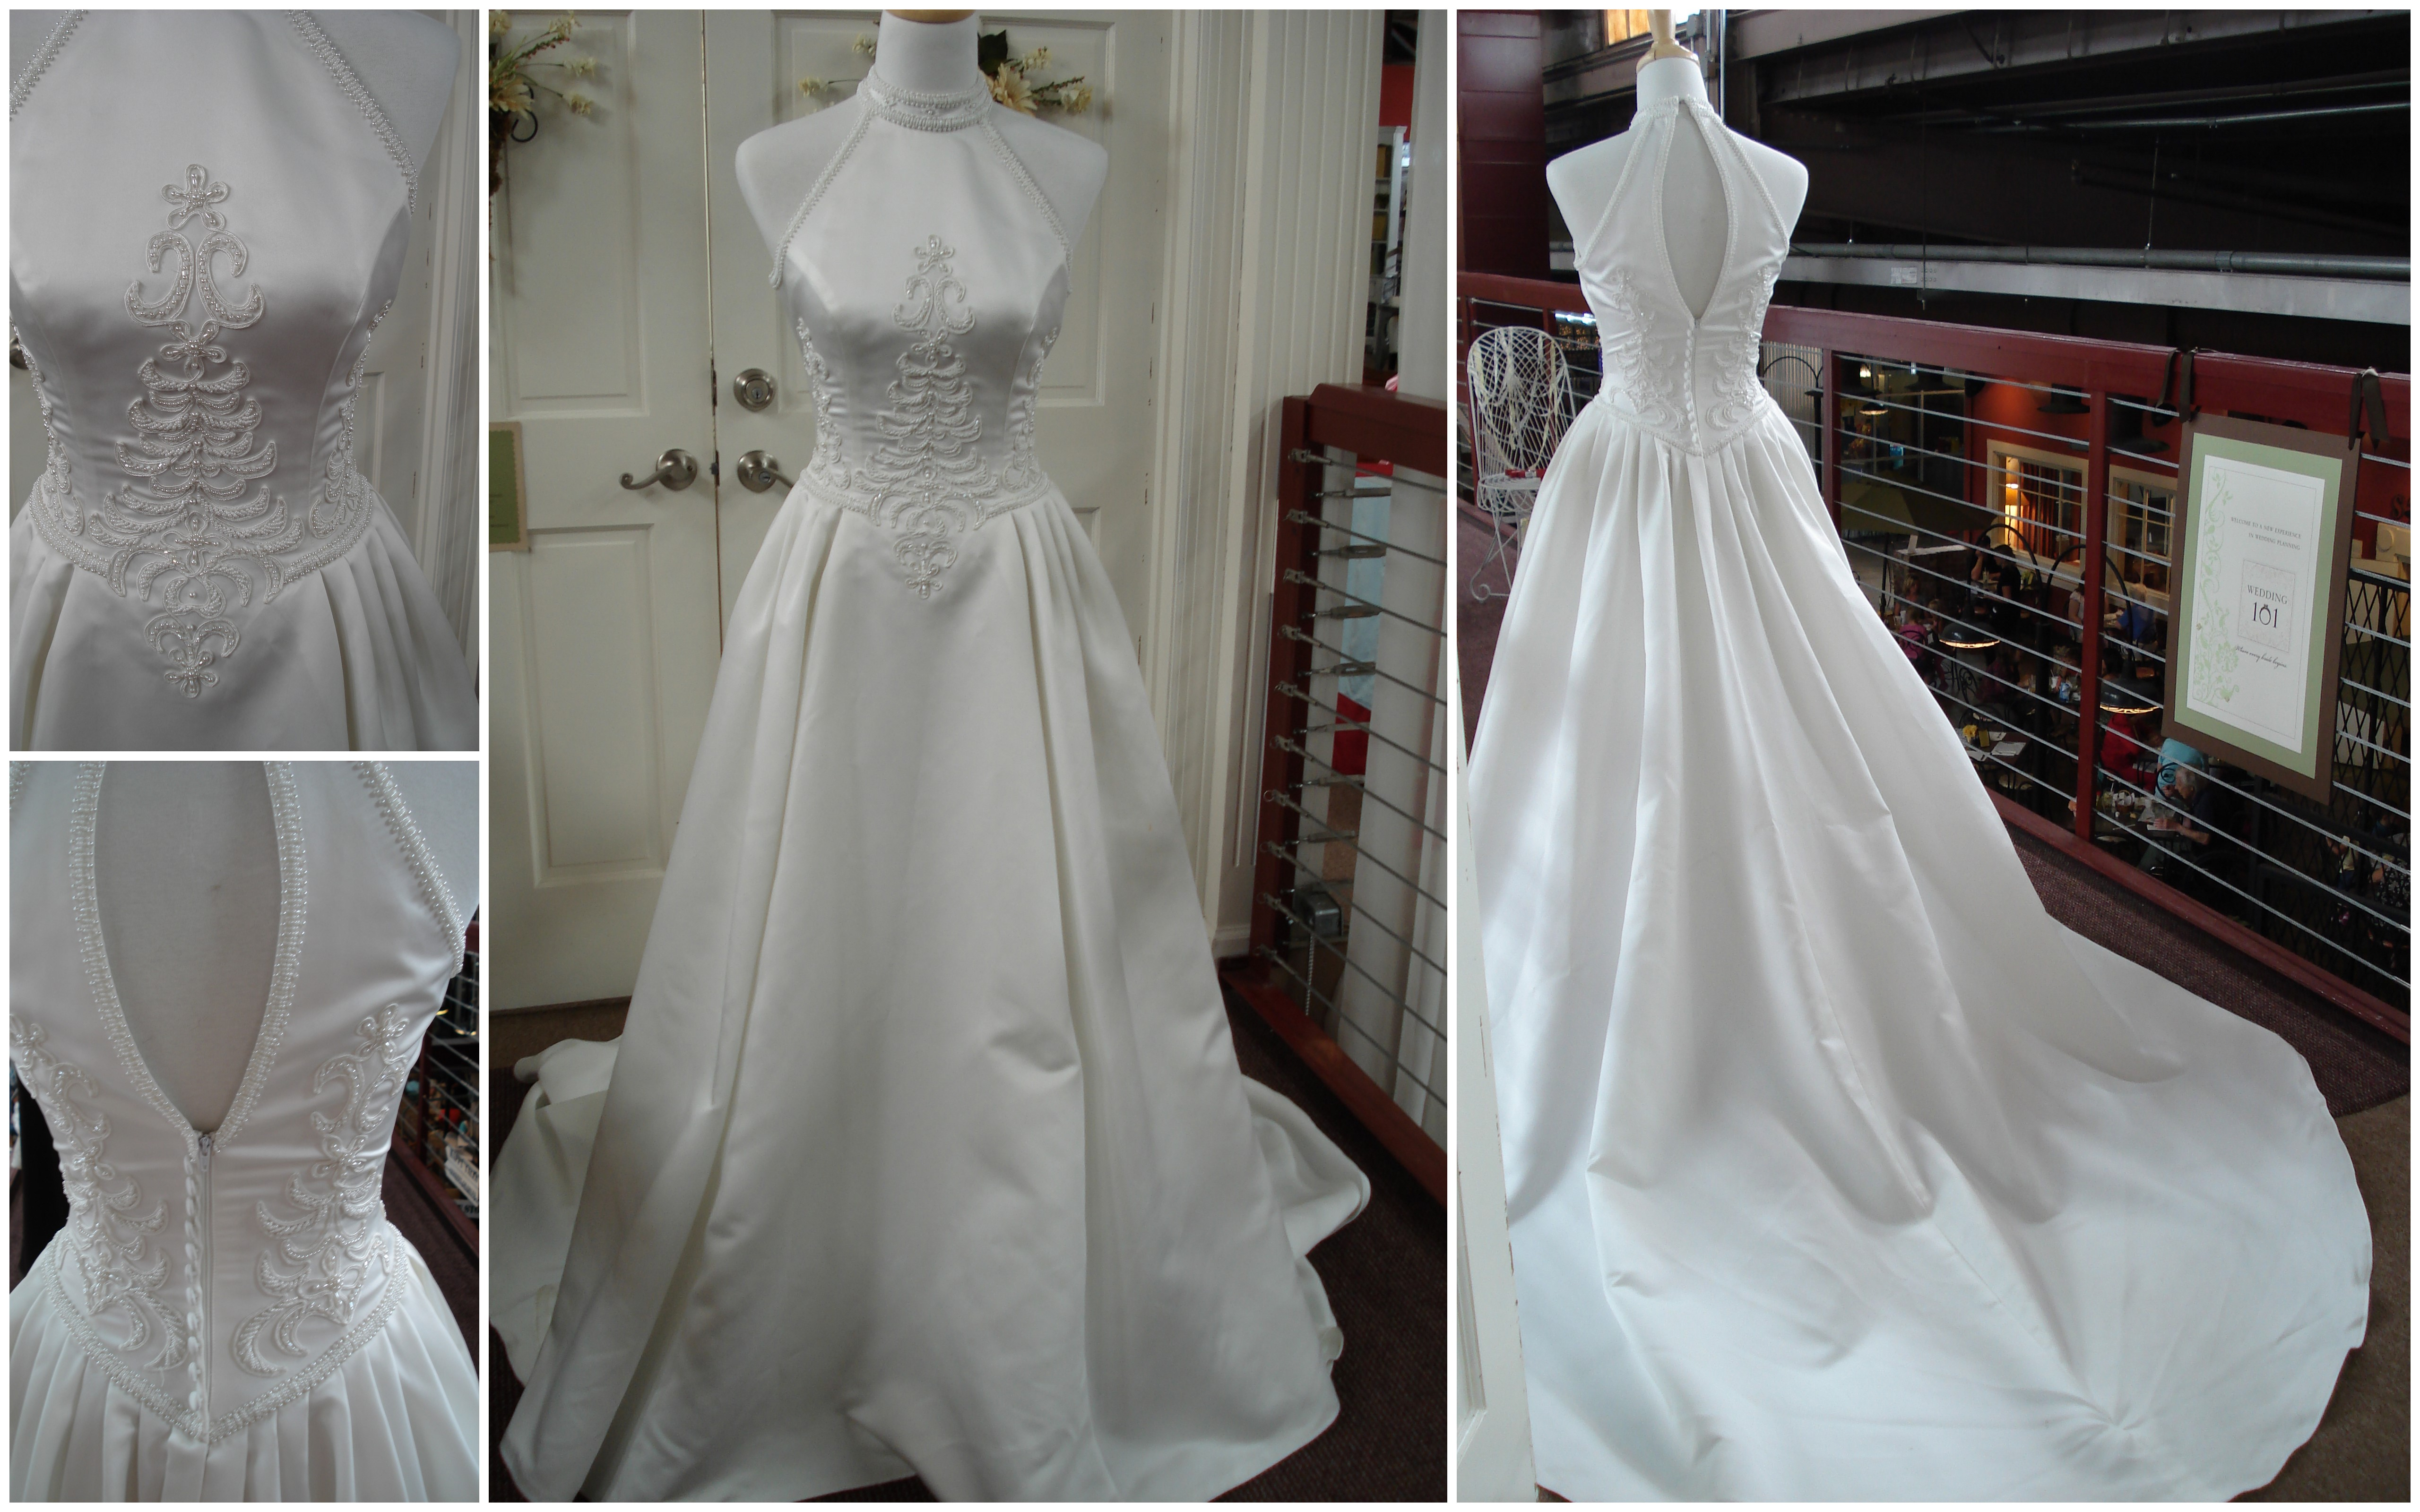 Wedding 101 Bridal Expo And Silent Auction: Gown Sneak